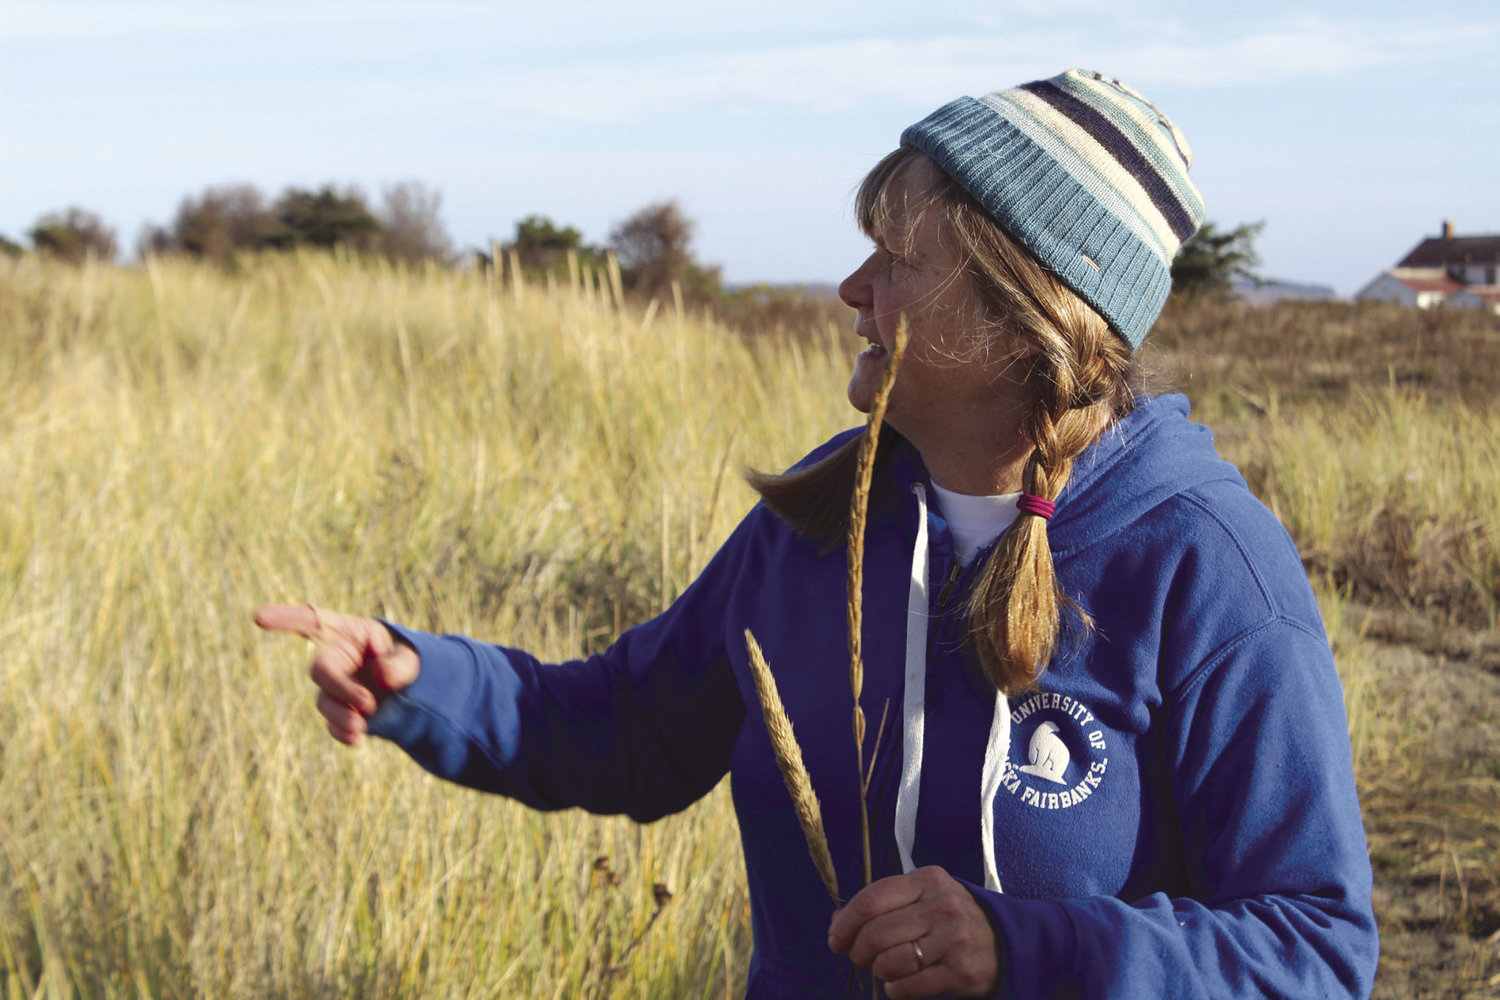 Sharon Schlentner of the Washington Native Plant Society demonstrated how to tell the difference between native and non-native beach grass at a work party Oct. 27 at Fort Worden.